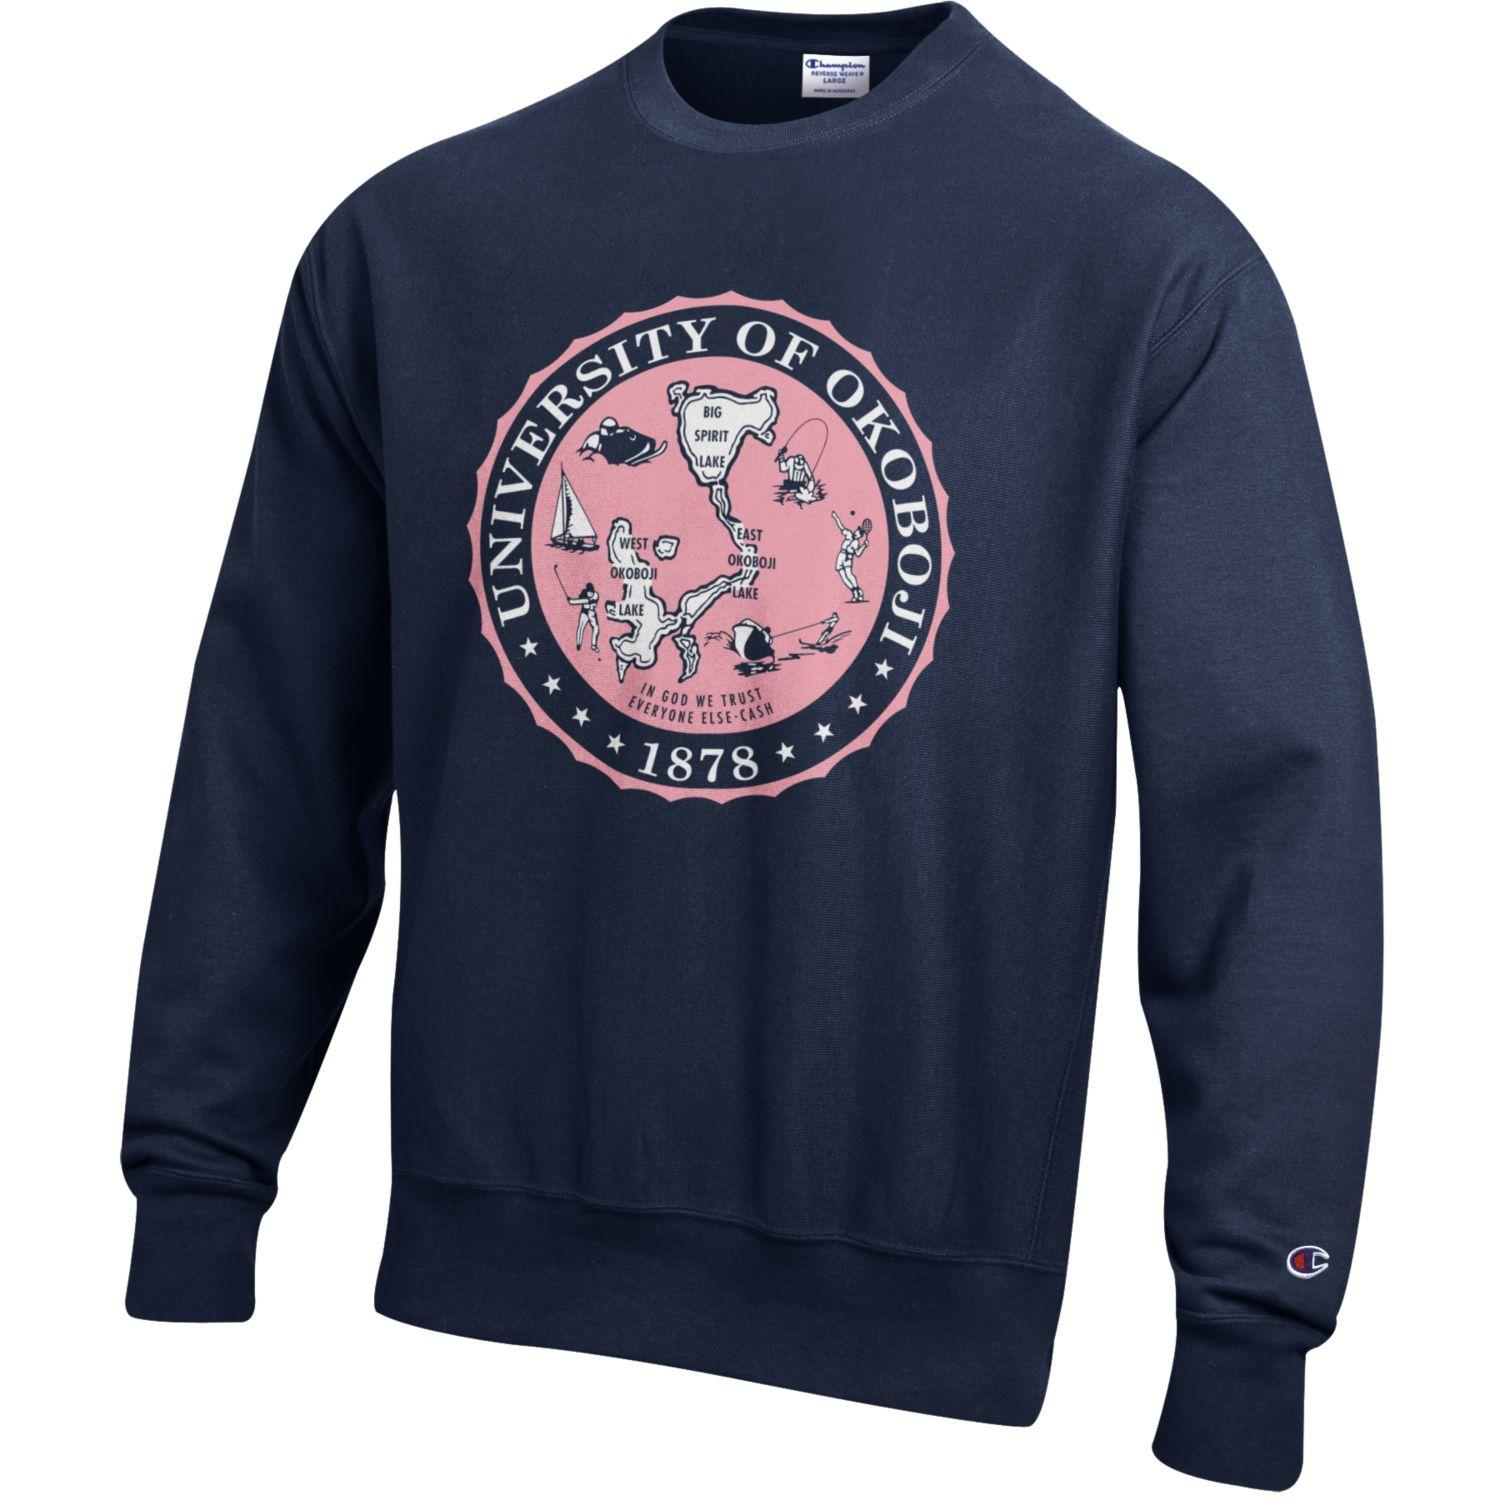 The Navy Champion Reverse Weave White & Pink Crest Crew